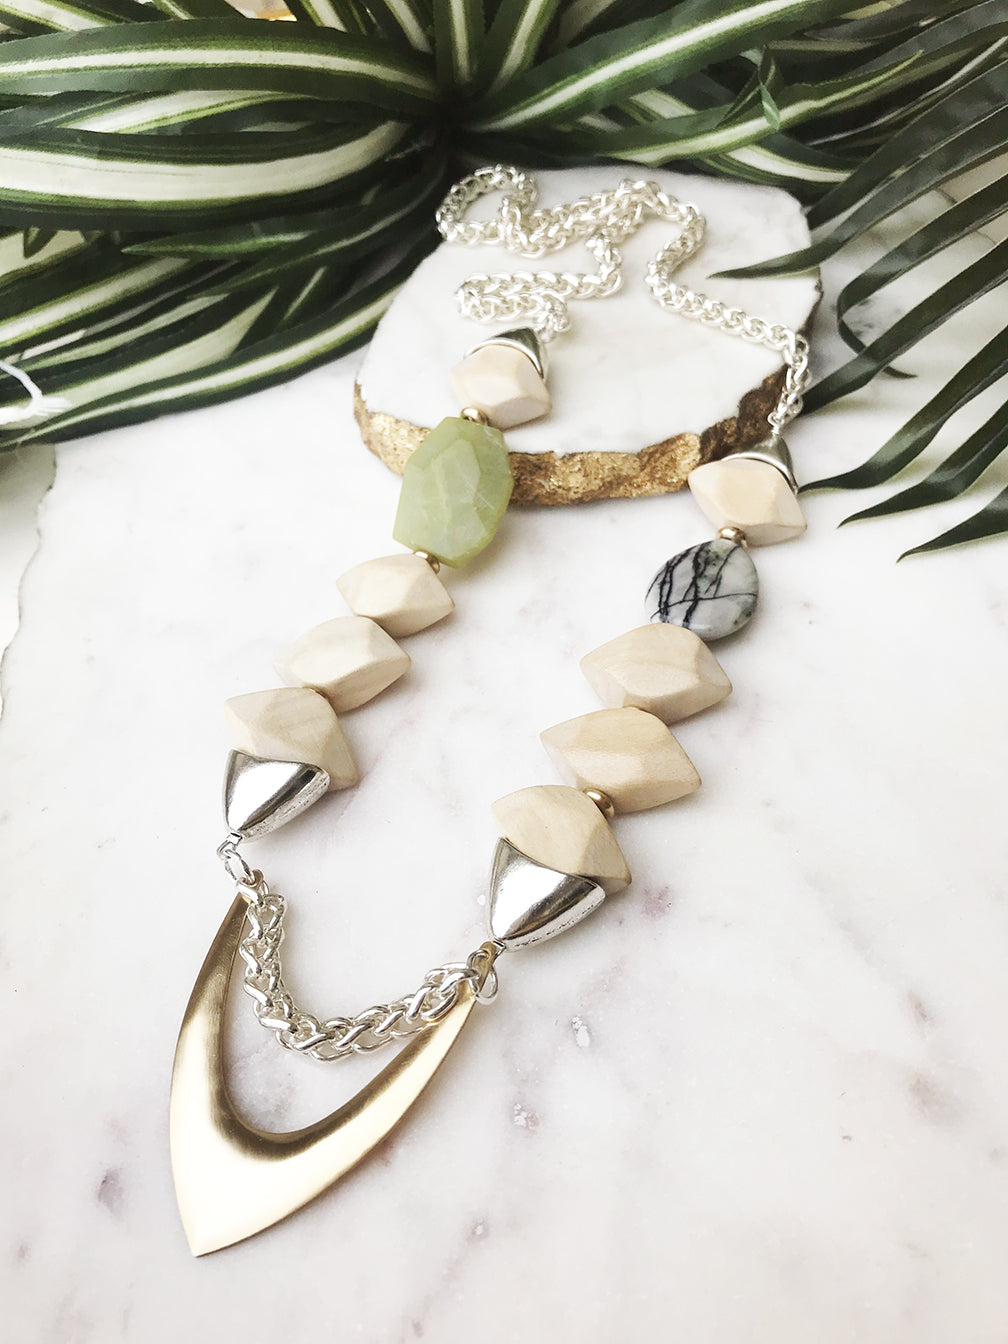 groove necklace - GR-021-NL